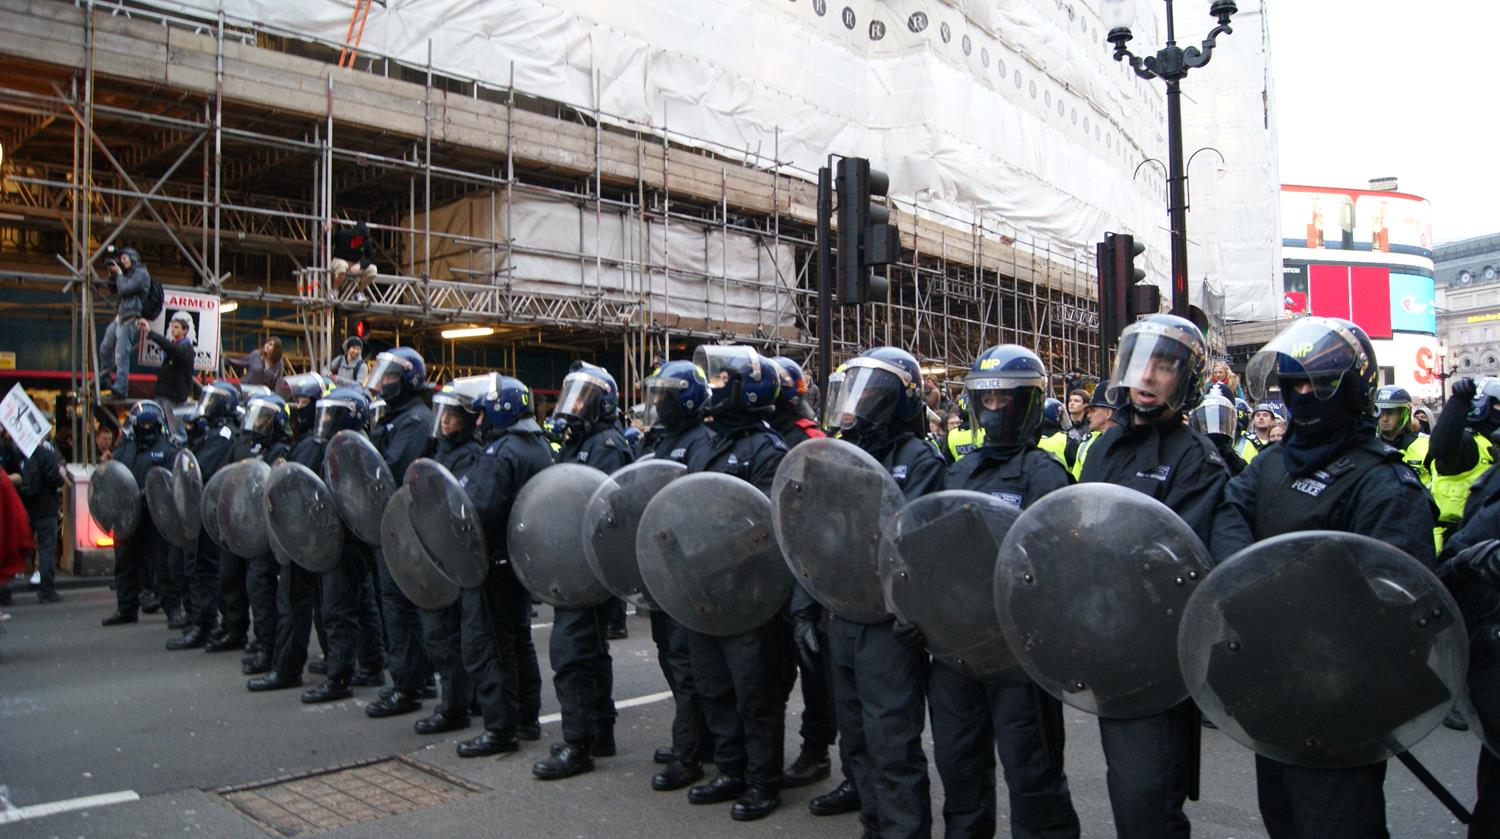 London Photography of Police in Riot Gear by MAKSAM Photography